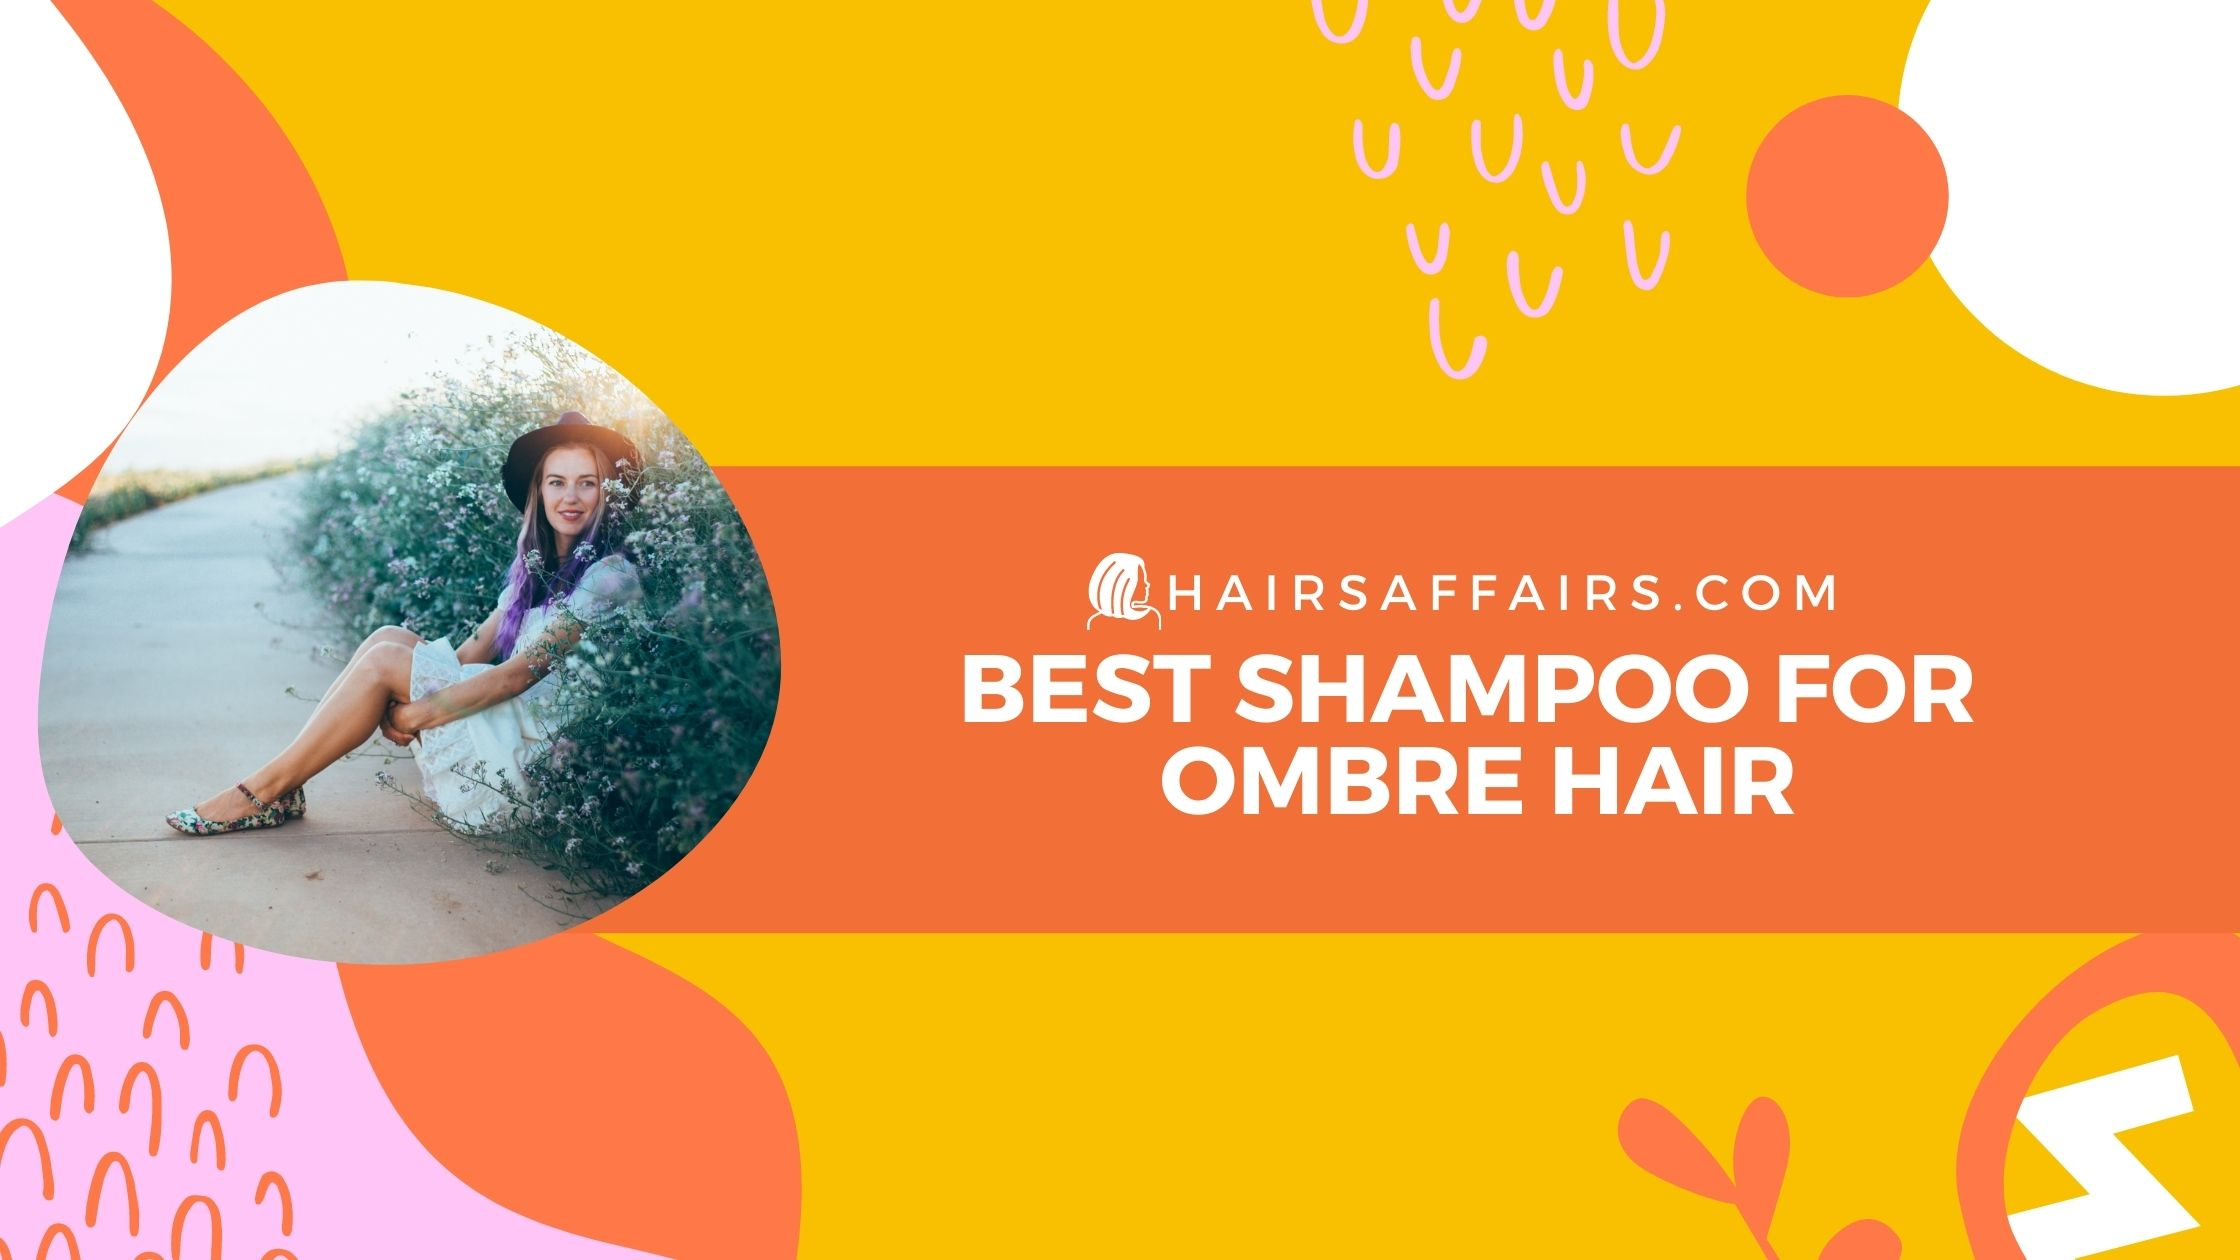 Best Shampoo for Ombre Hair